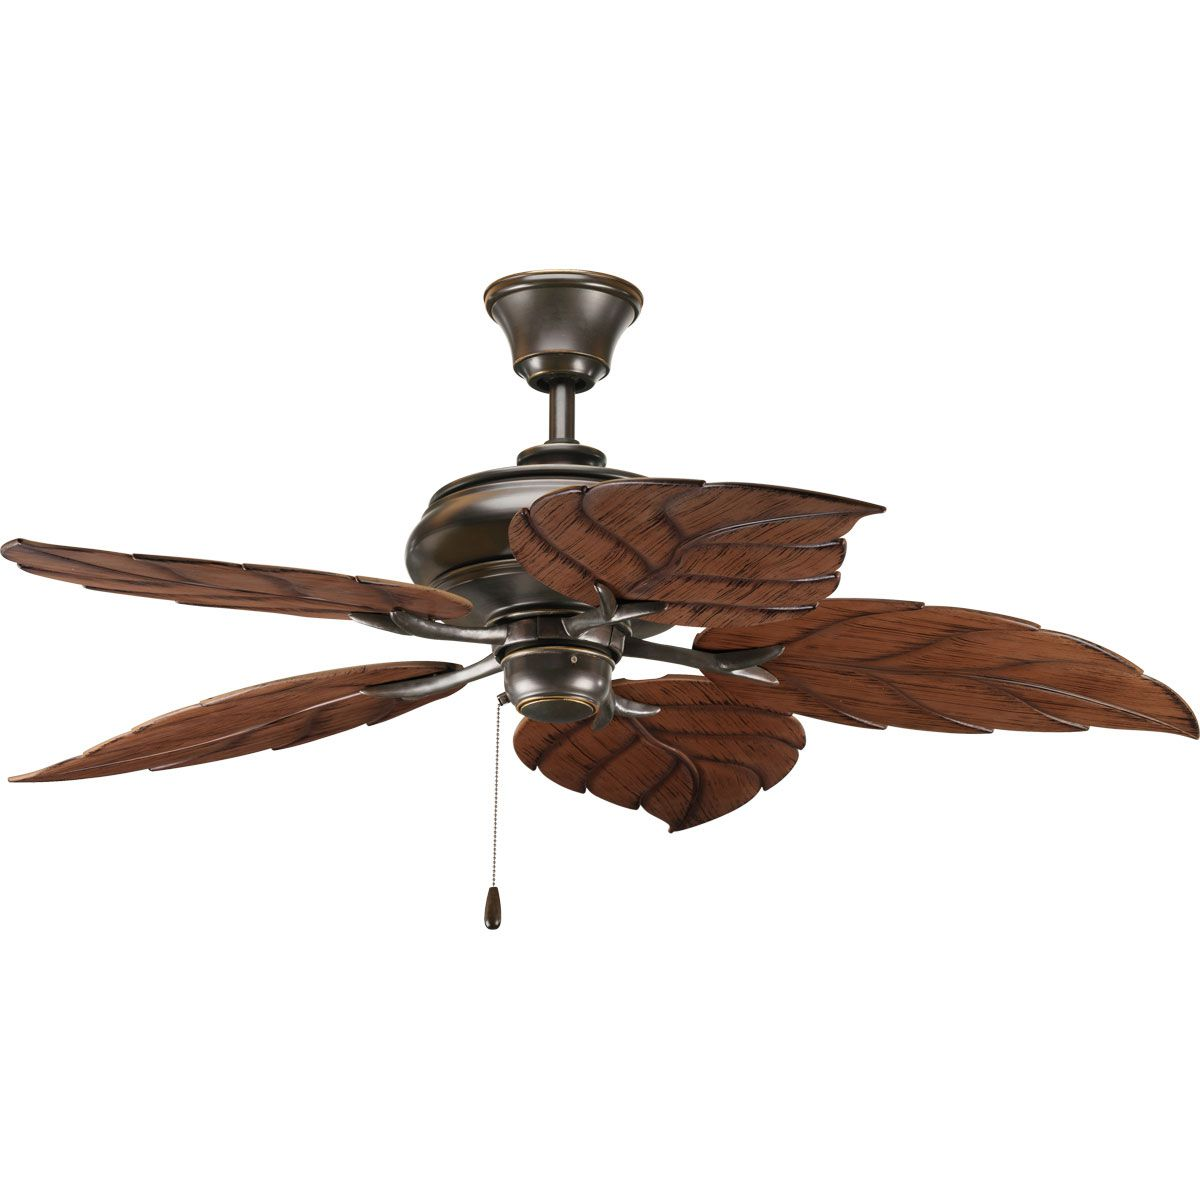 Ceiling Fans With Good Lighting Airpro Collection 52